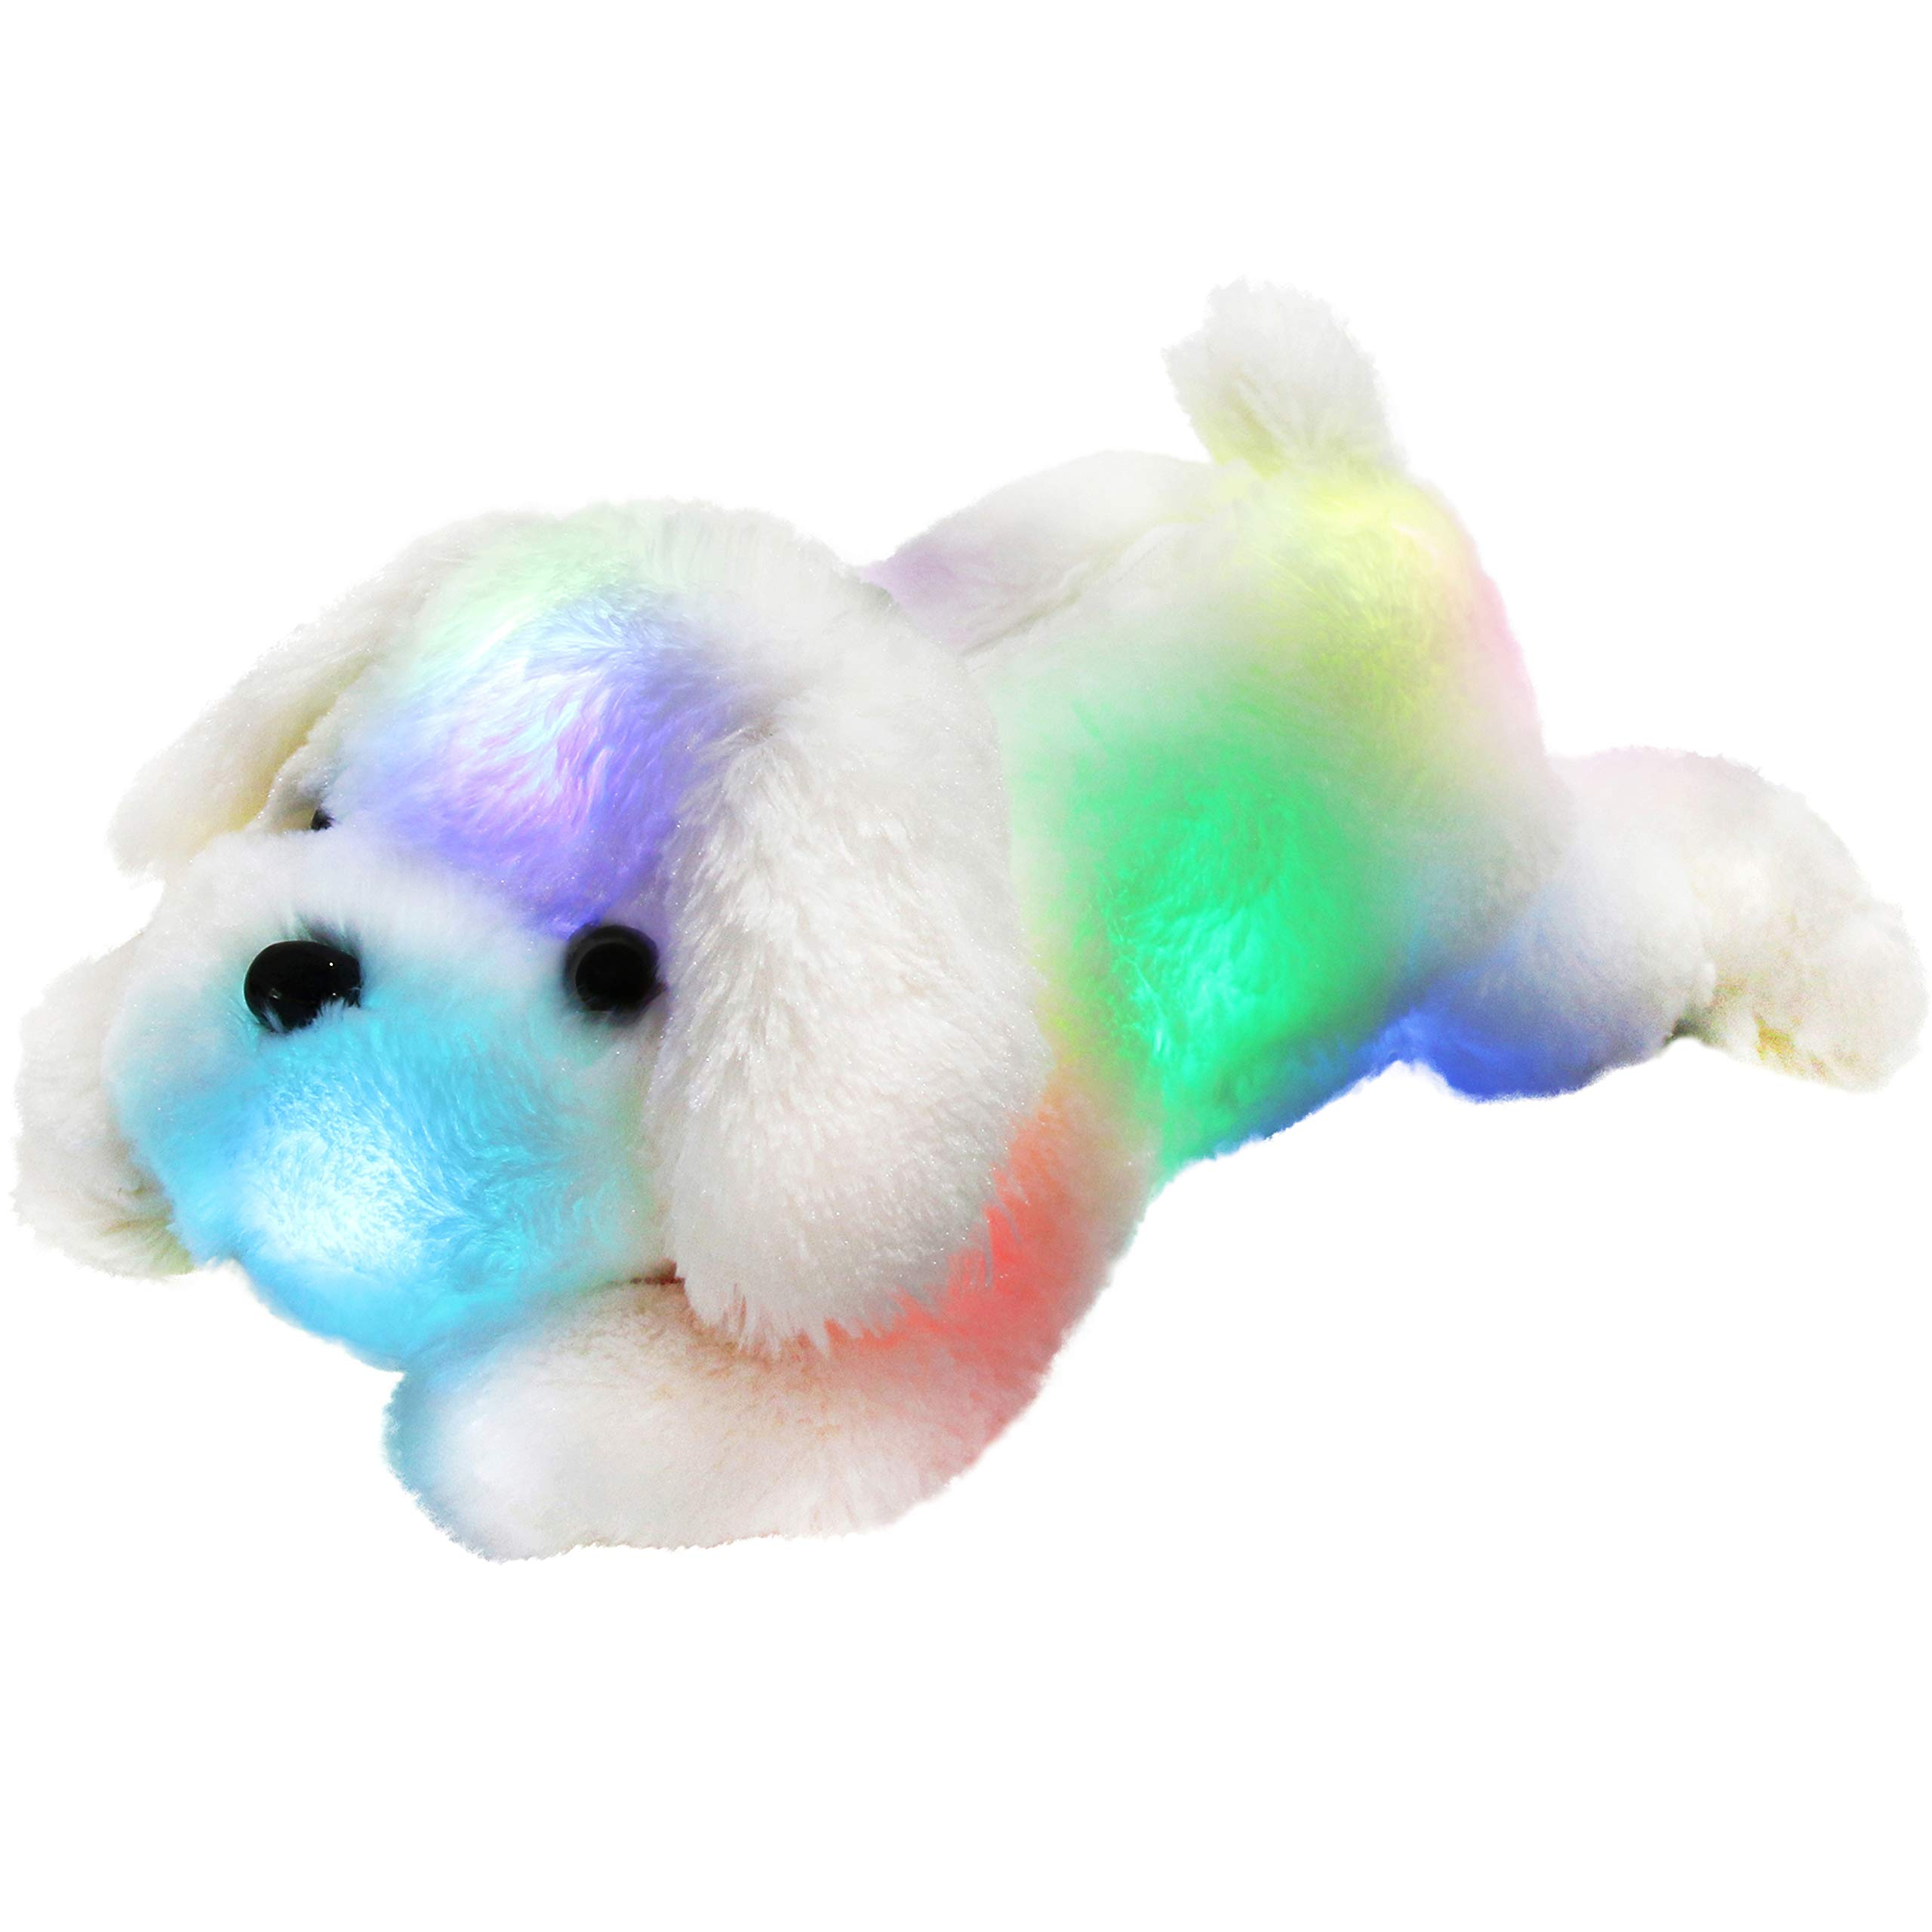 WEWILL LED Puppy Stuffed Animals Creative Night Light Lovely Dog Glow Soft Plush Toys Gifts for Kids on Halloween Christmas, Birthday, 18-Inch (White) by Bstaofy